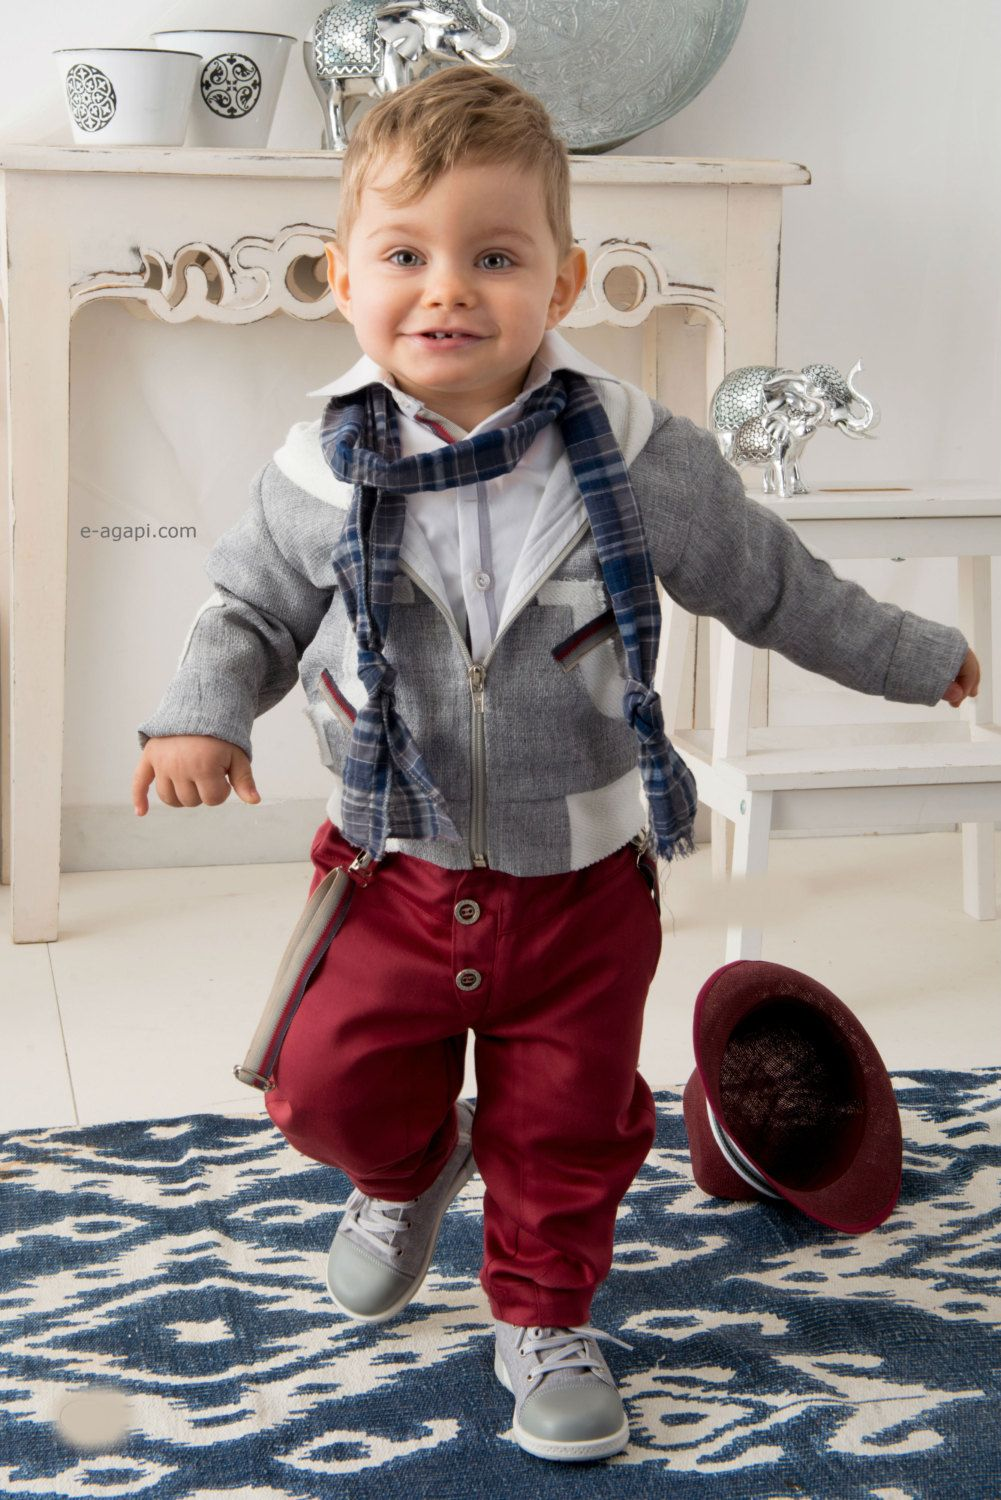 Couture Boy Outfit Toddler Boy Outfit Set Wedding Baby Clothes Greek Baptism Boy Christening Greek Suit Red Blue Wedding Outfit And Shoes Toddler Boy Outfits Toddler Outfits Boy Outfits